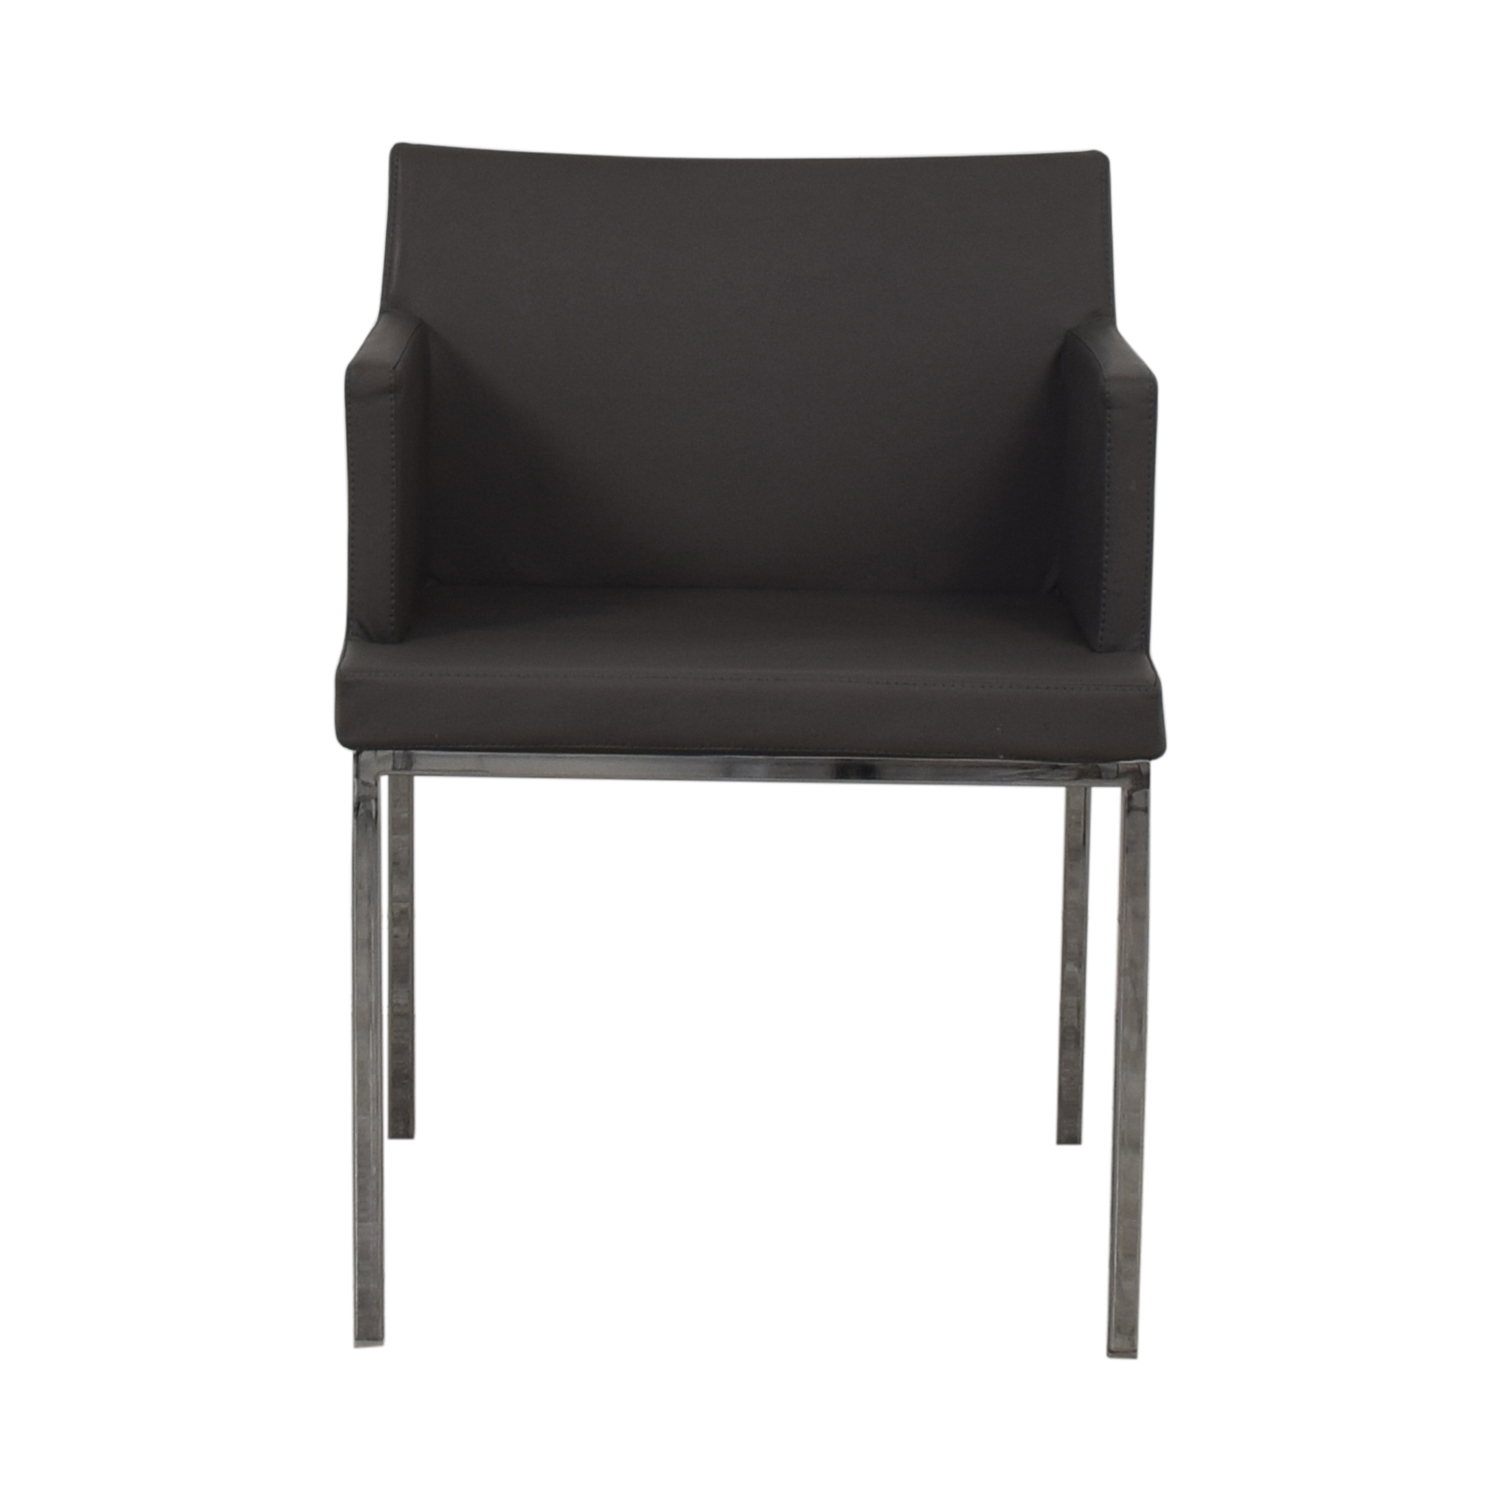 Lazonni Leather Chrome Chair Lazzoni